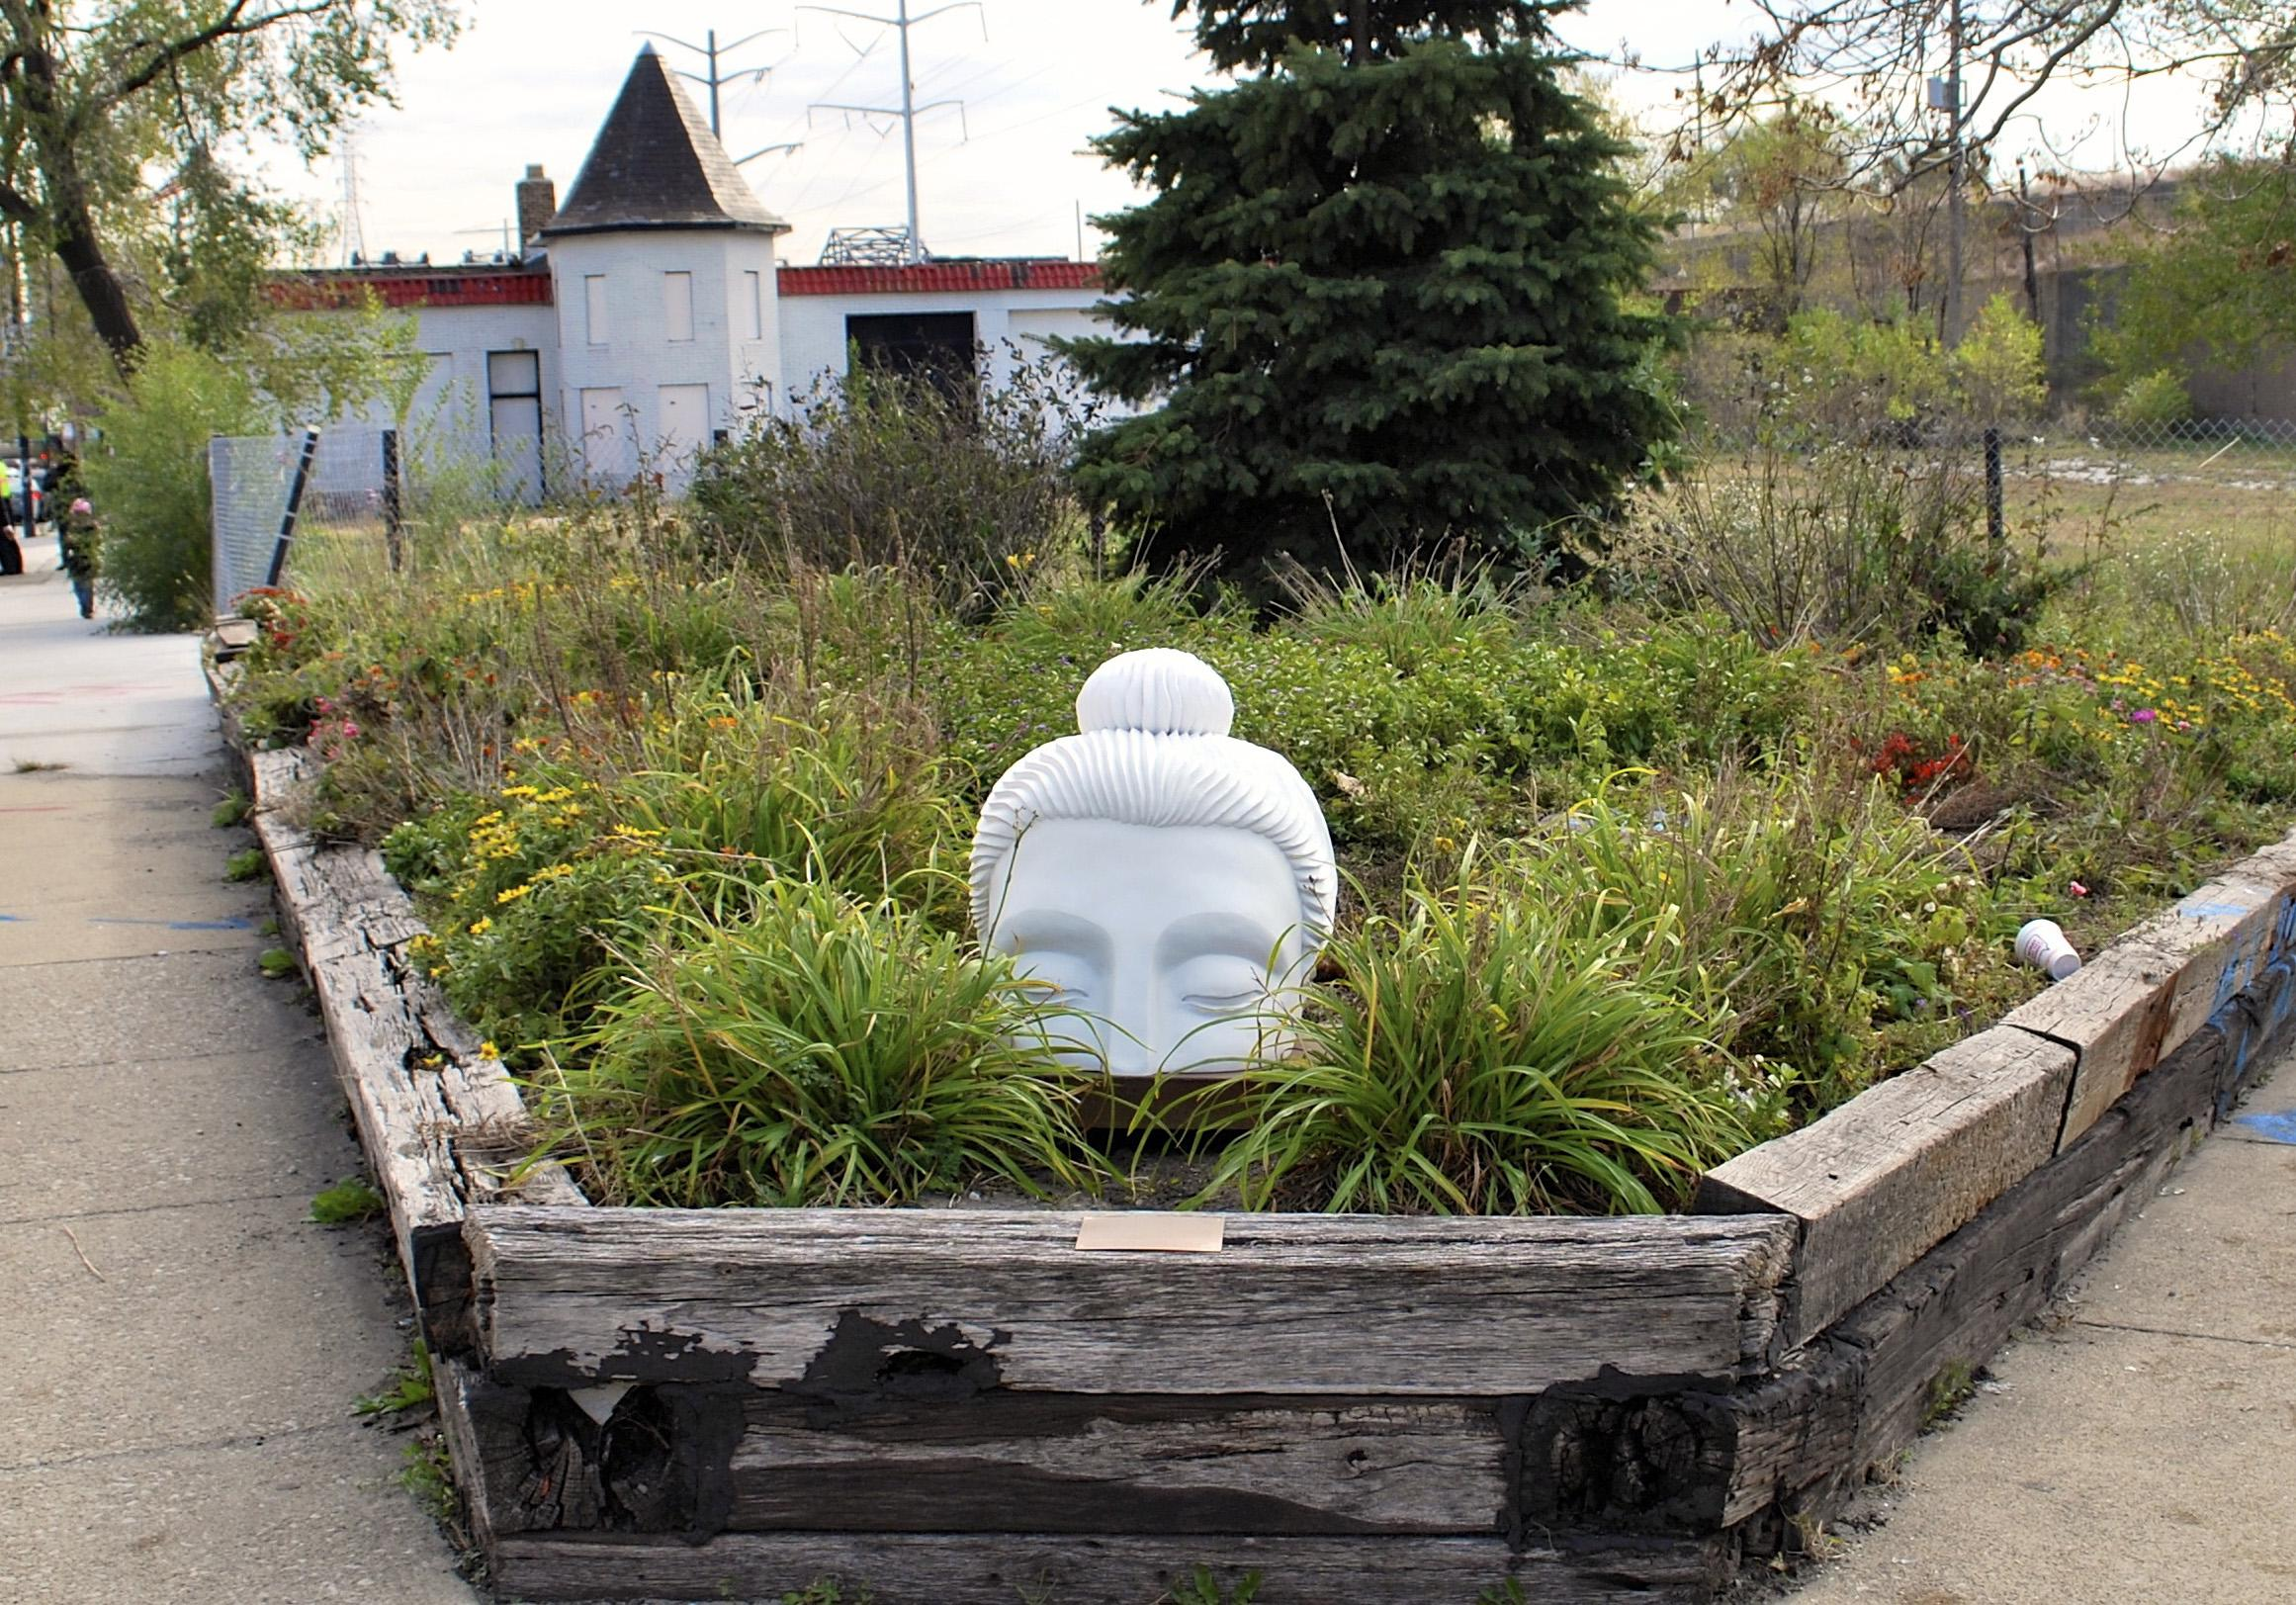 A Buddha sculpture in South Chicago